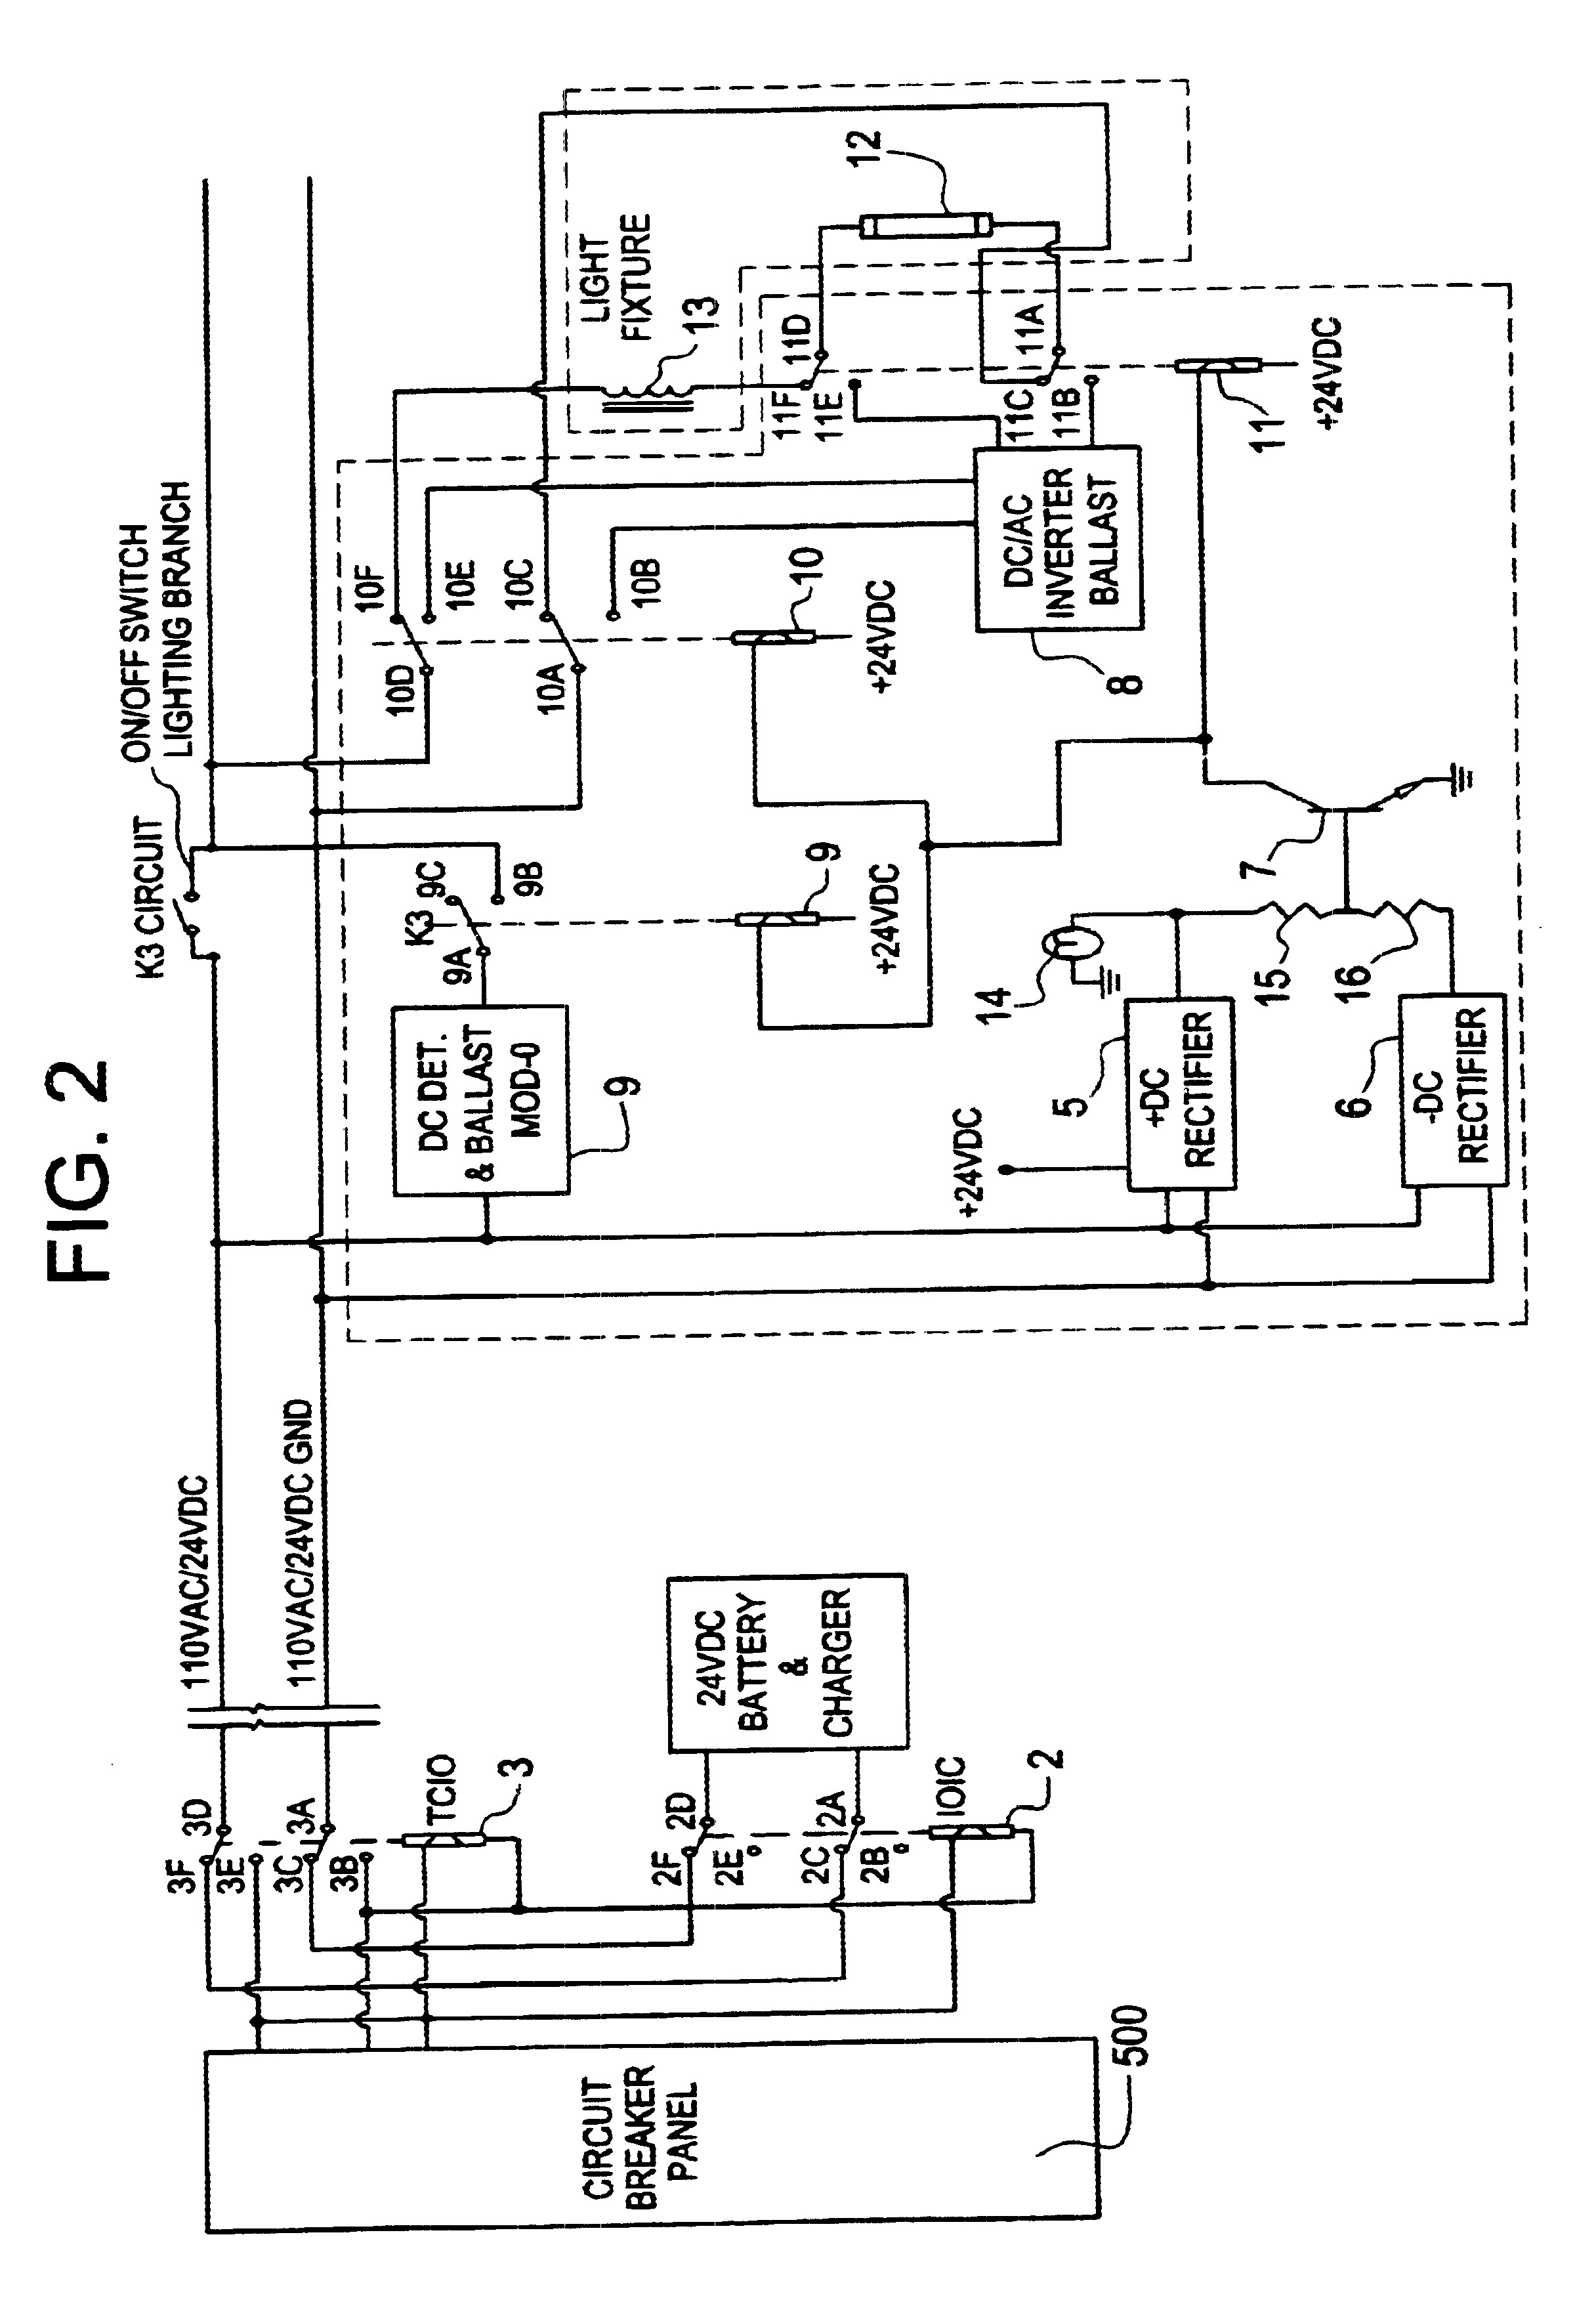 philips bodine b100 wiring diagram